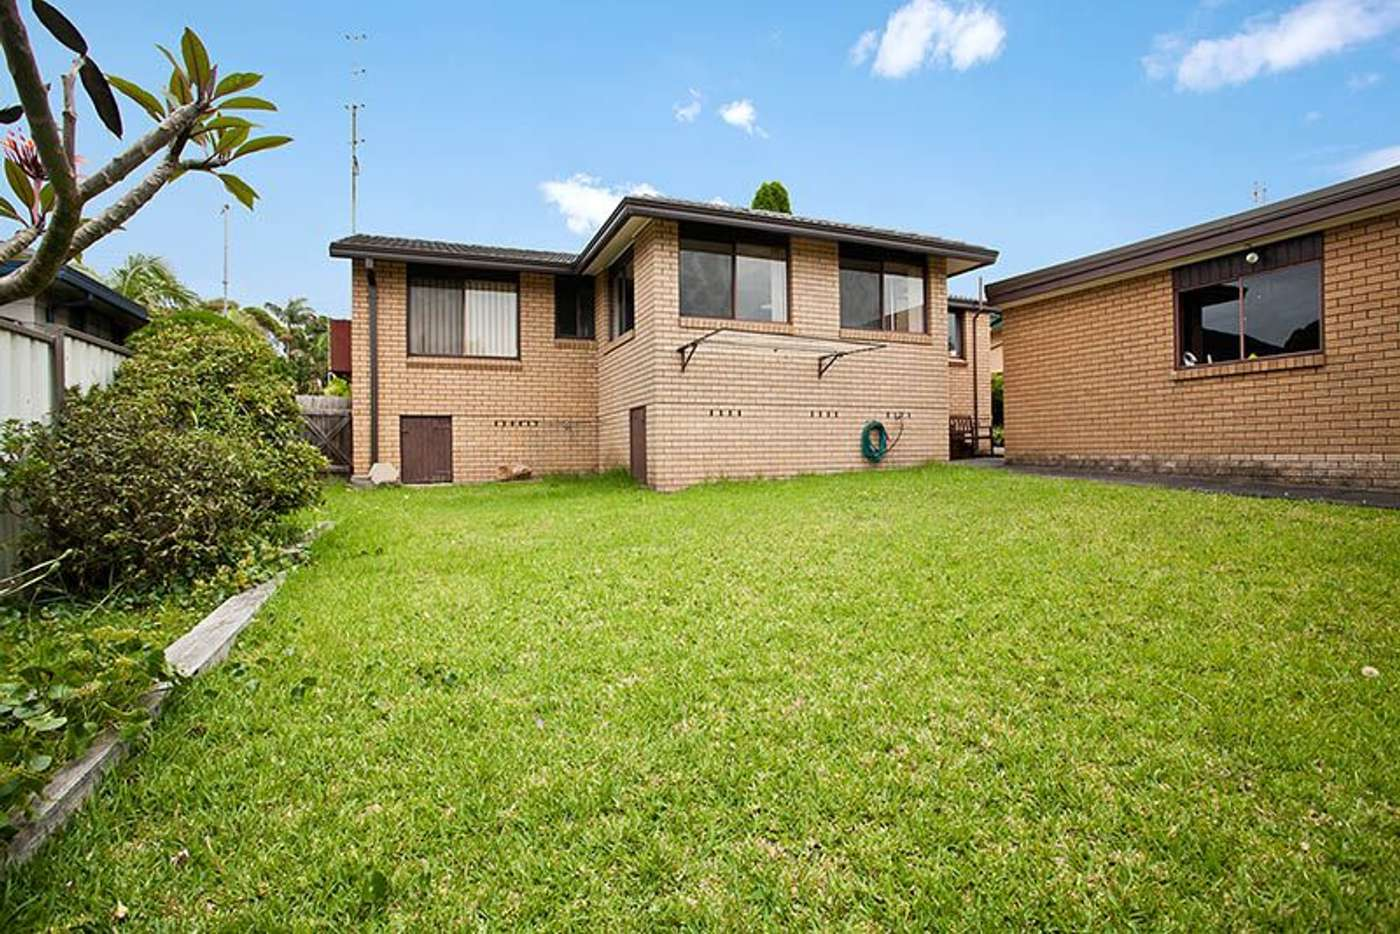 Sixth view of Homely house listing, 29 Loftus Drive, Barrack Heights NSW 2528